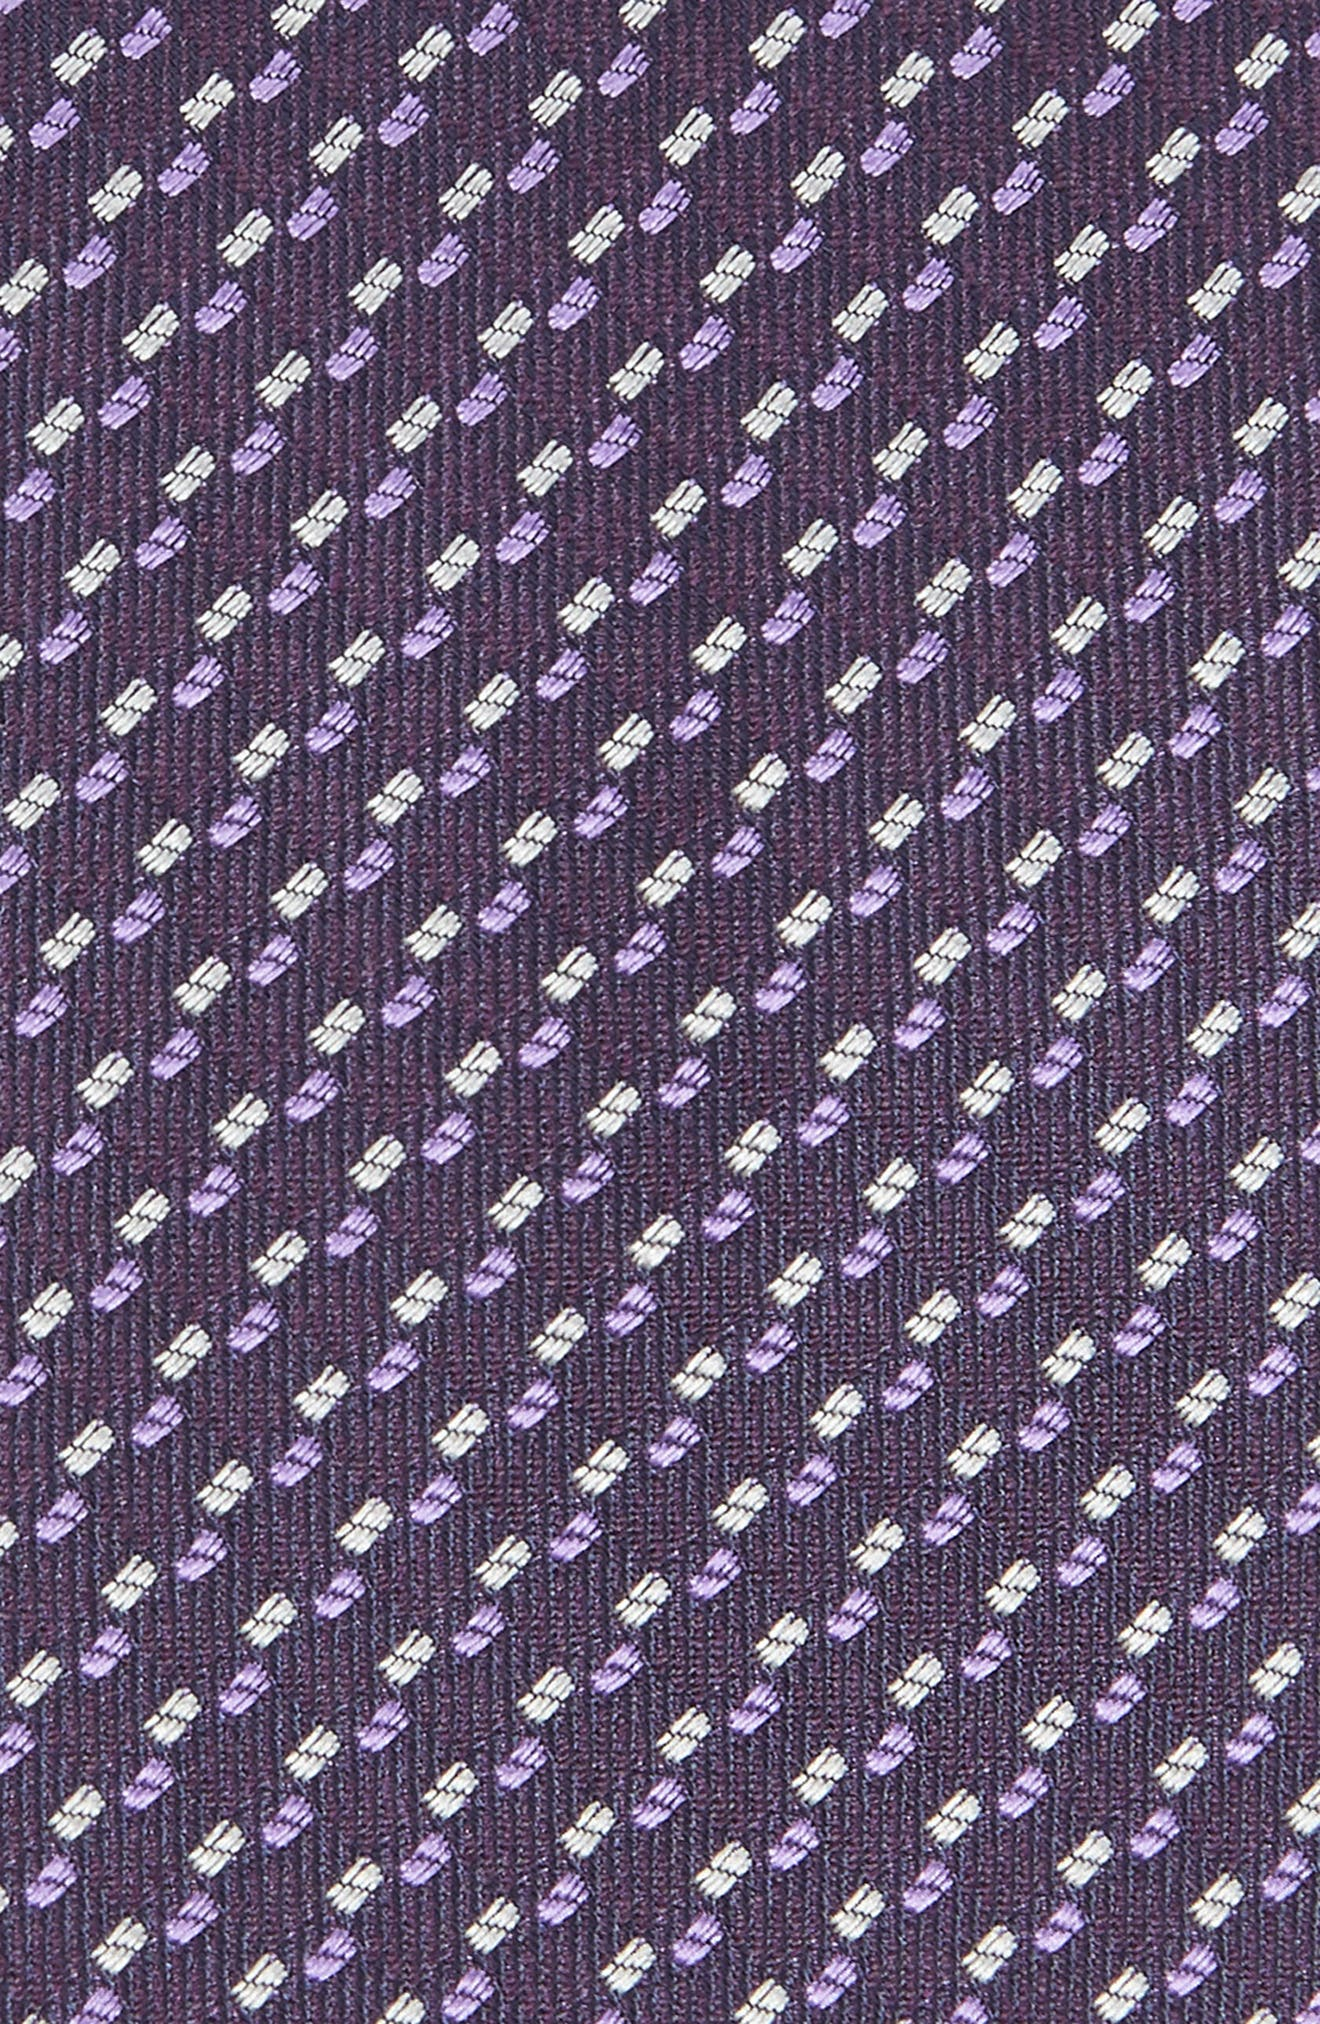 Dot Silk Tie,                             Alternate thumbnail 2, color,                             PURPLE